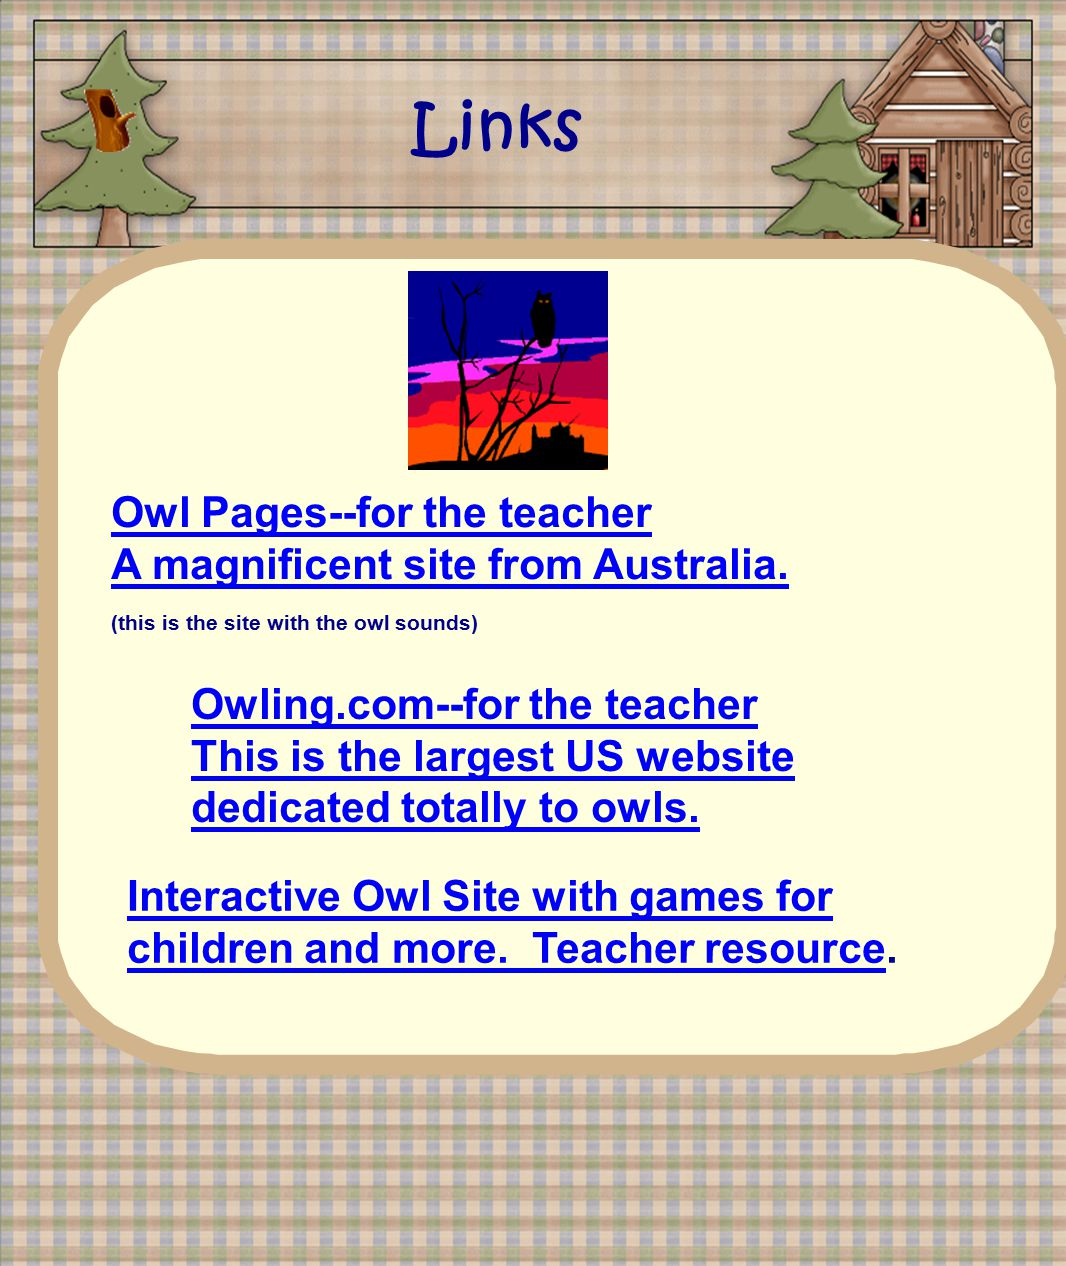 Owl Pages--for the teacher A magnificent site from Australia.